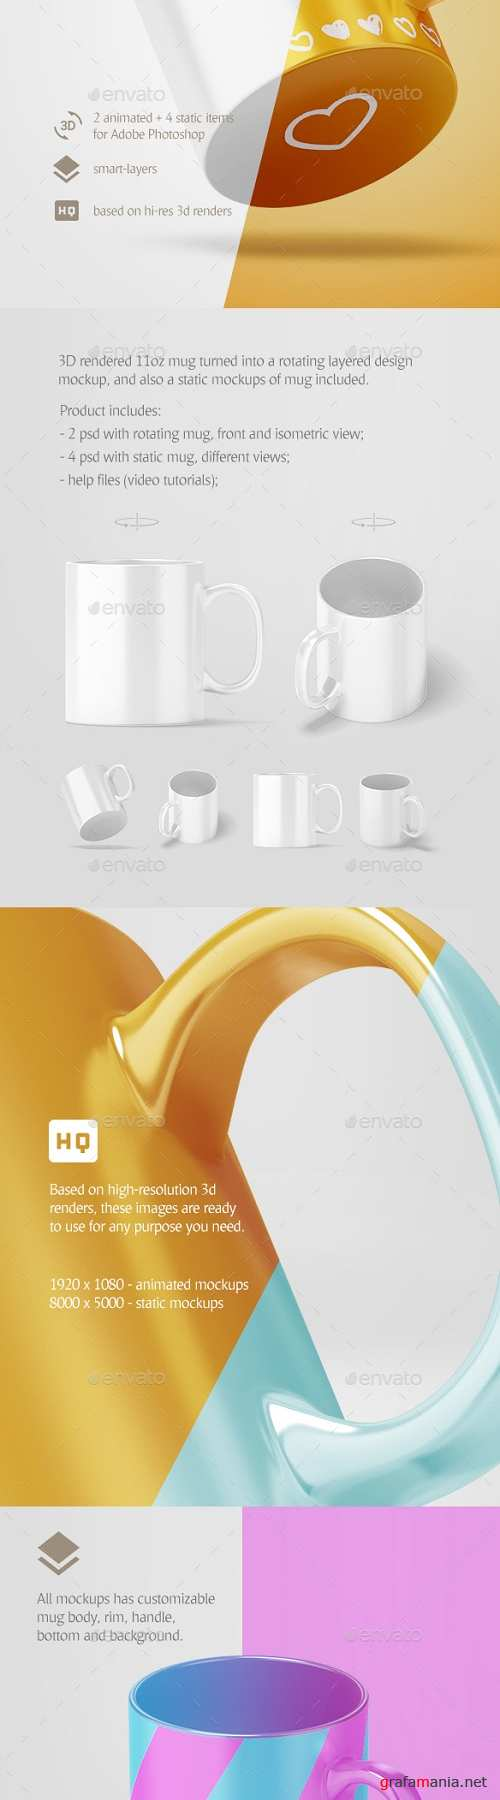 Mug Animated Mockup – 19693663 - 1378442